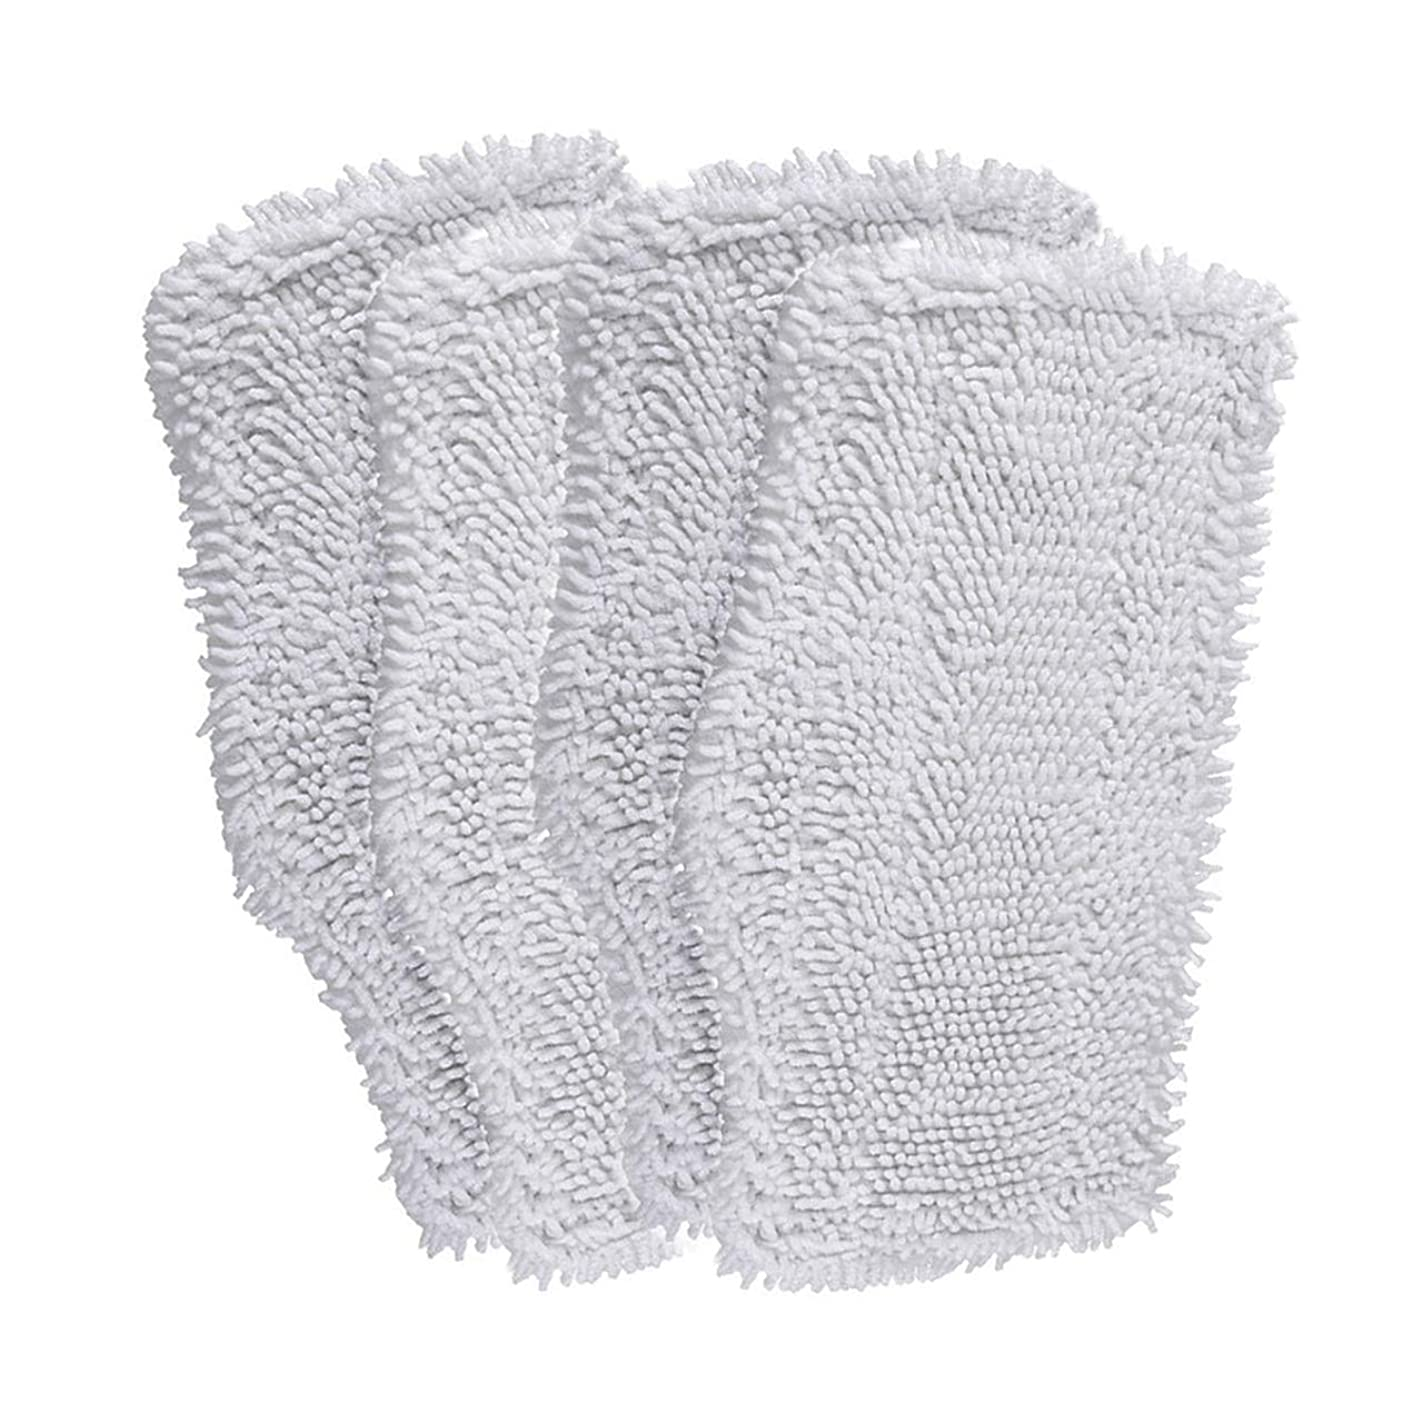 Ximoon 4 Pack Washable Cleaning Pads Replacements for Shark Steam & Spray Mop SK410, SK460, SK115, SK140, SK141, SK435CO, S3101, S3102, S3250, S3251